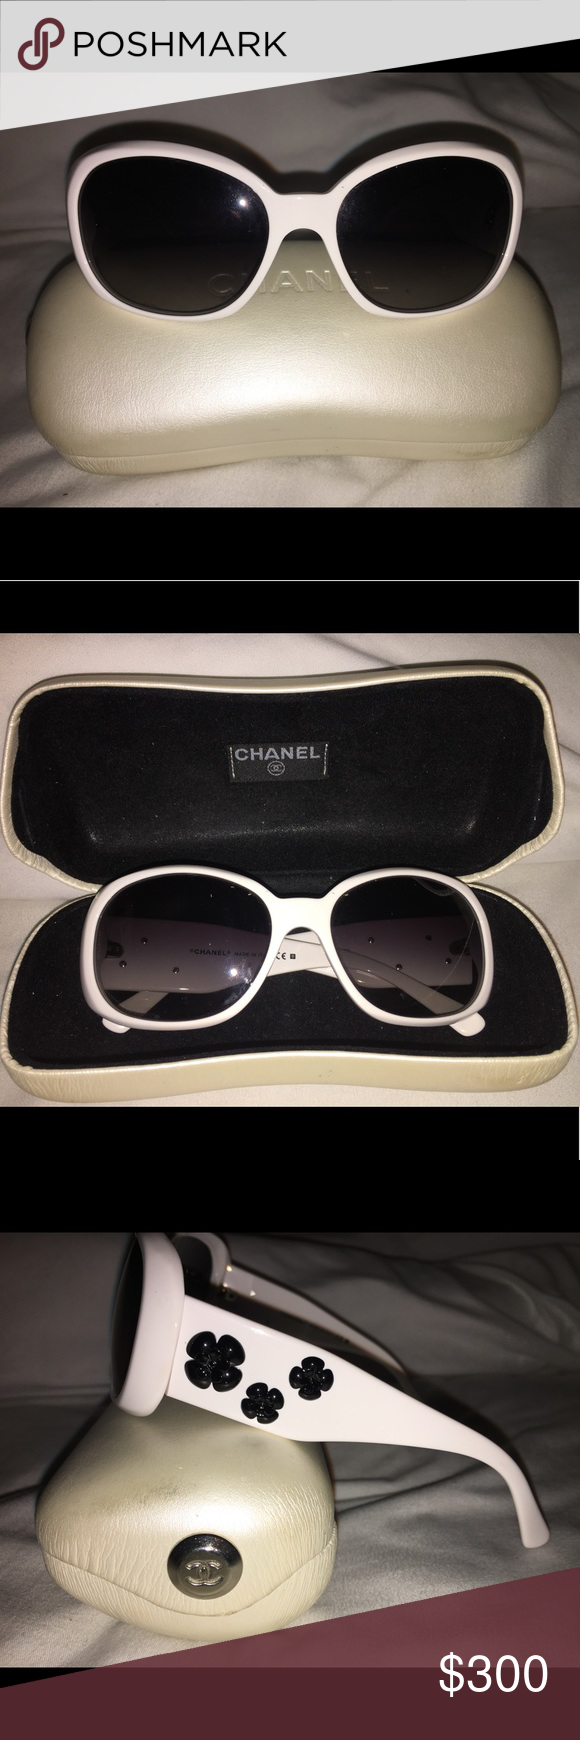 e58640c787bd Chanel 5113 CC Logo Camellia Flower Sunglasses Monochrome Square Wrap  polarized Two-toned in White/Black. CHANEL Accessories Sunglasses